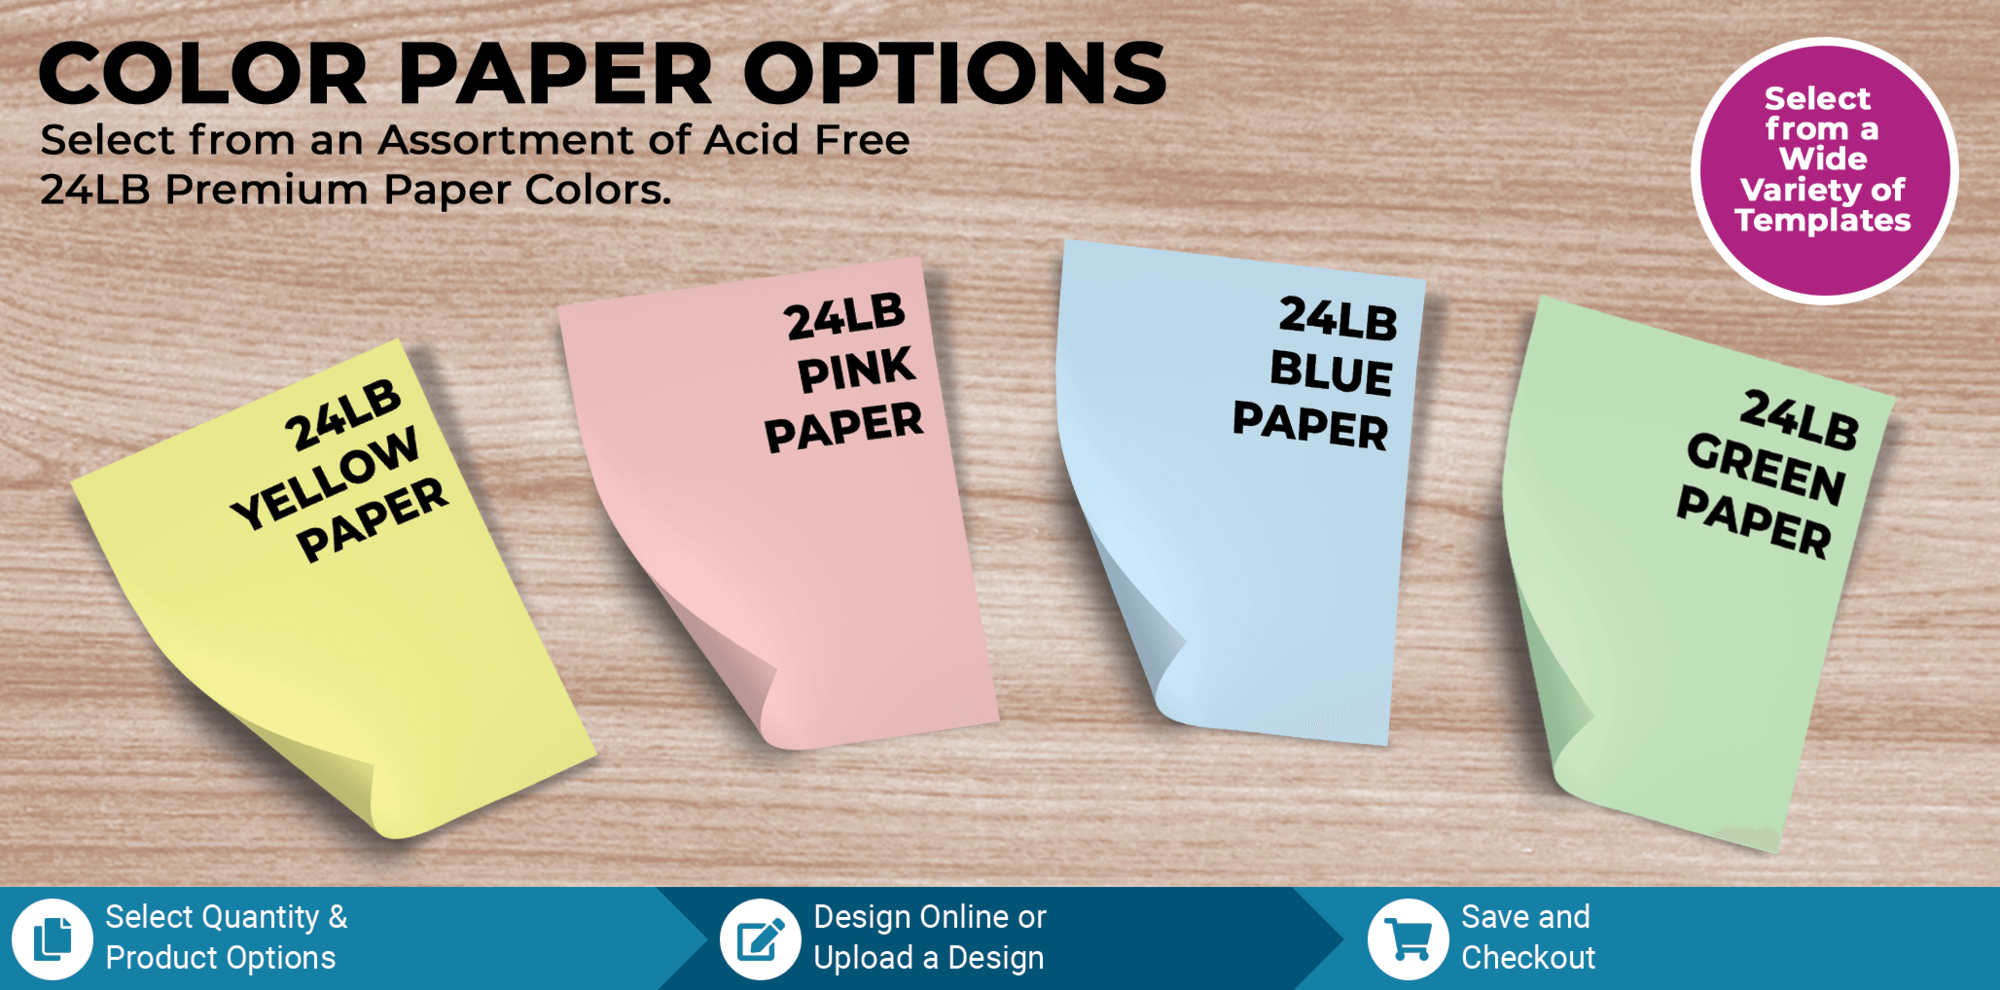 https://printpps.com/images/products_gallery_images/Custom-Sticky-Notes_Product-Page-Banner-279.png